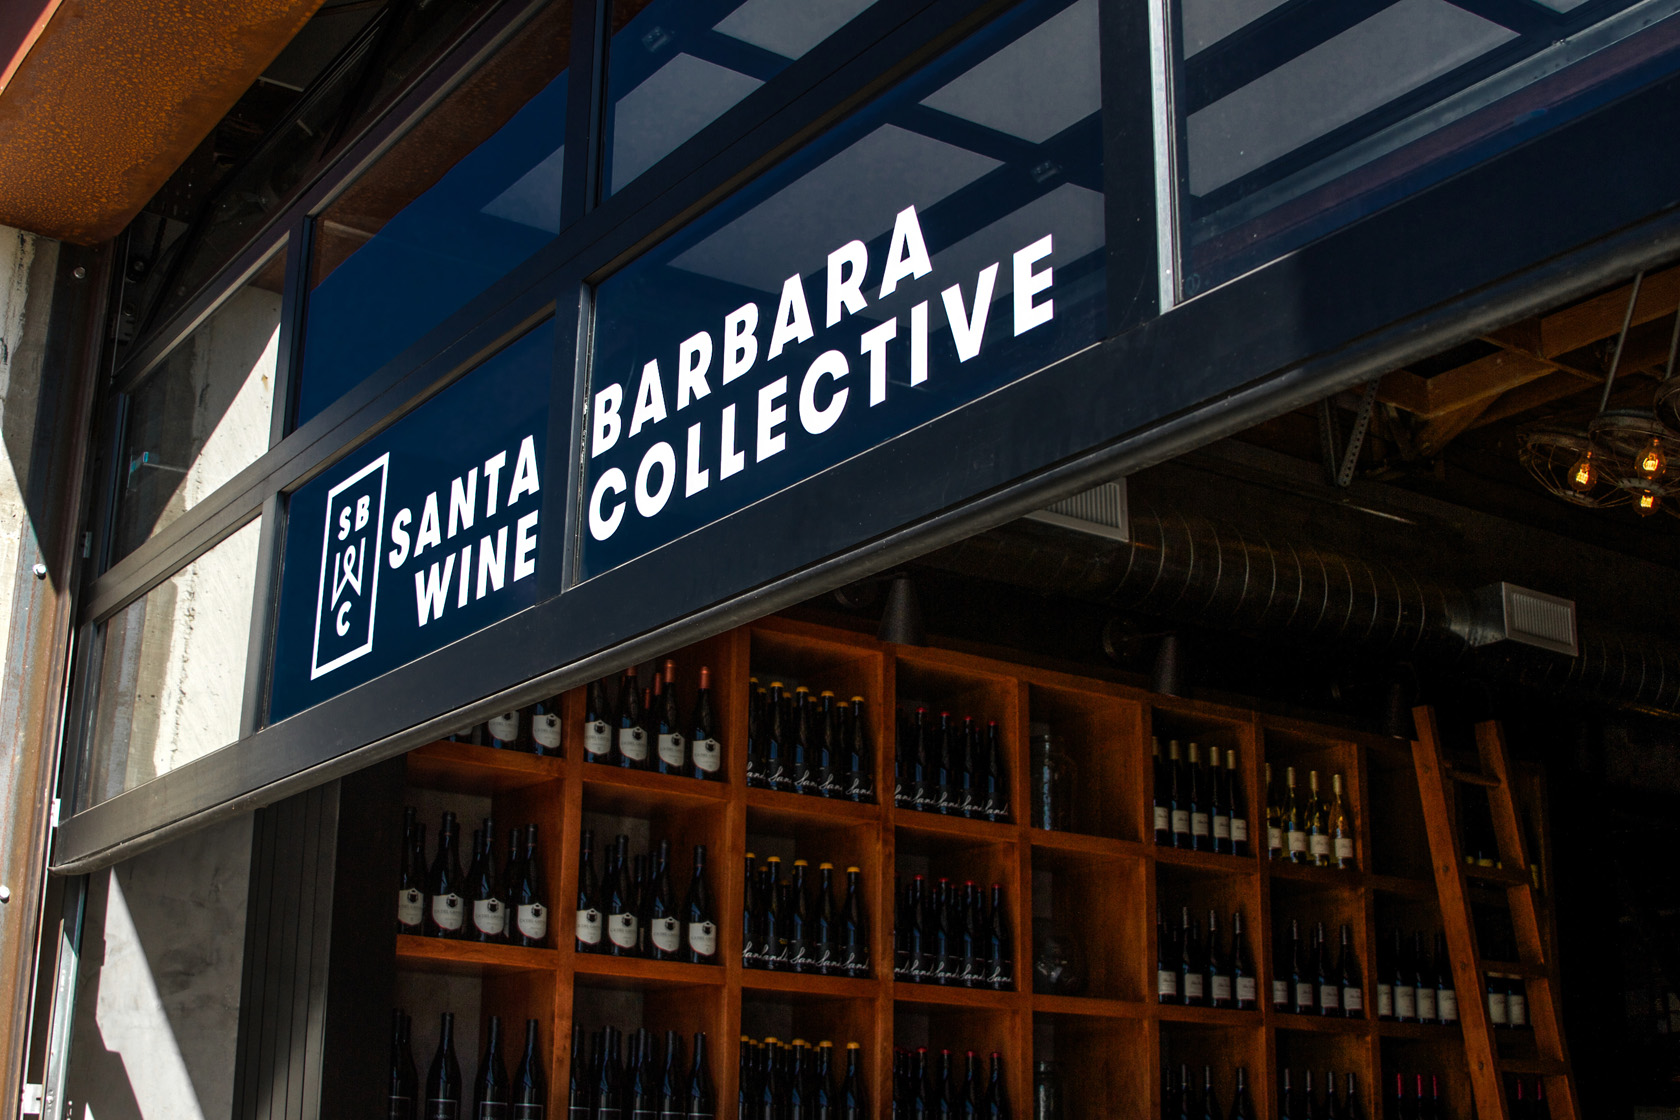 Santa Barbara Wine Collective